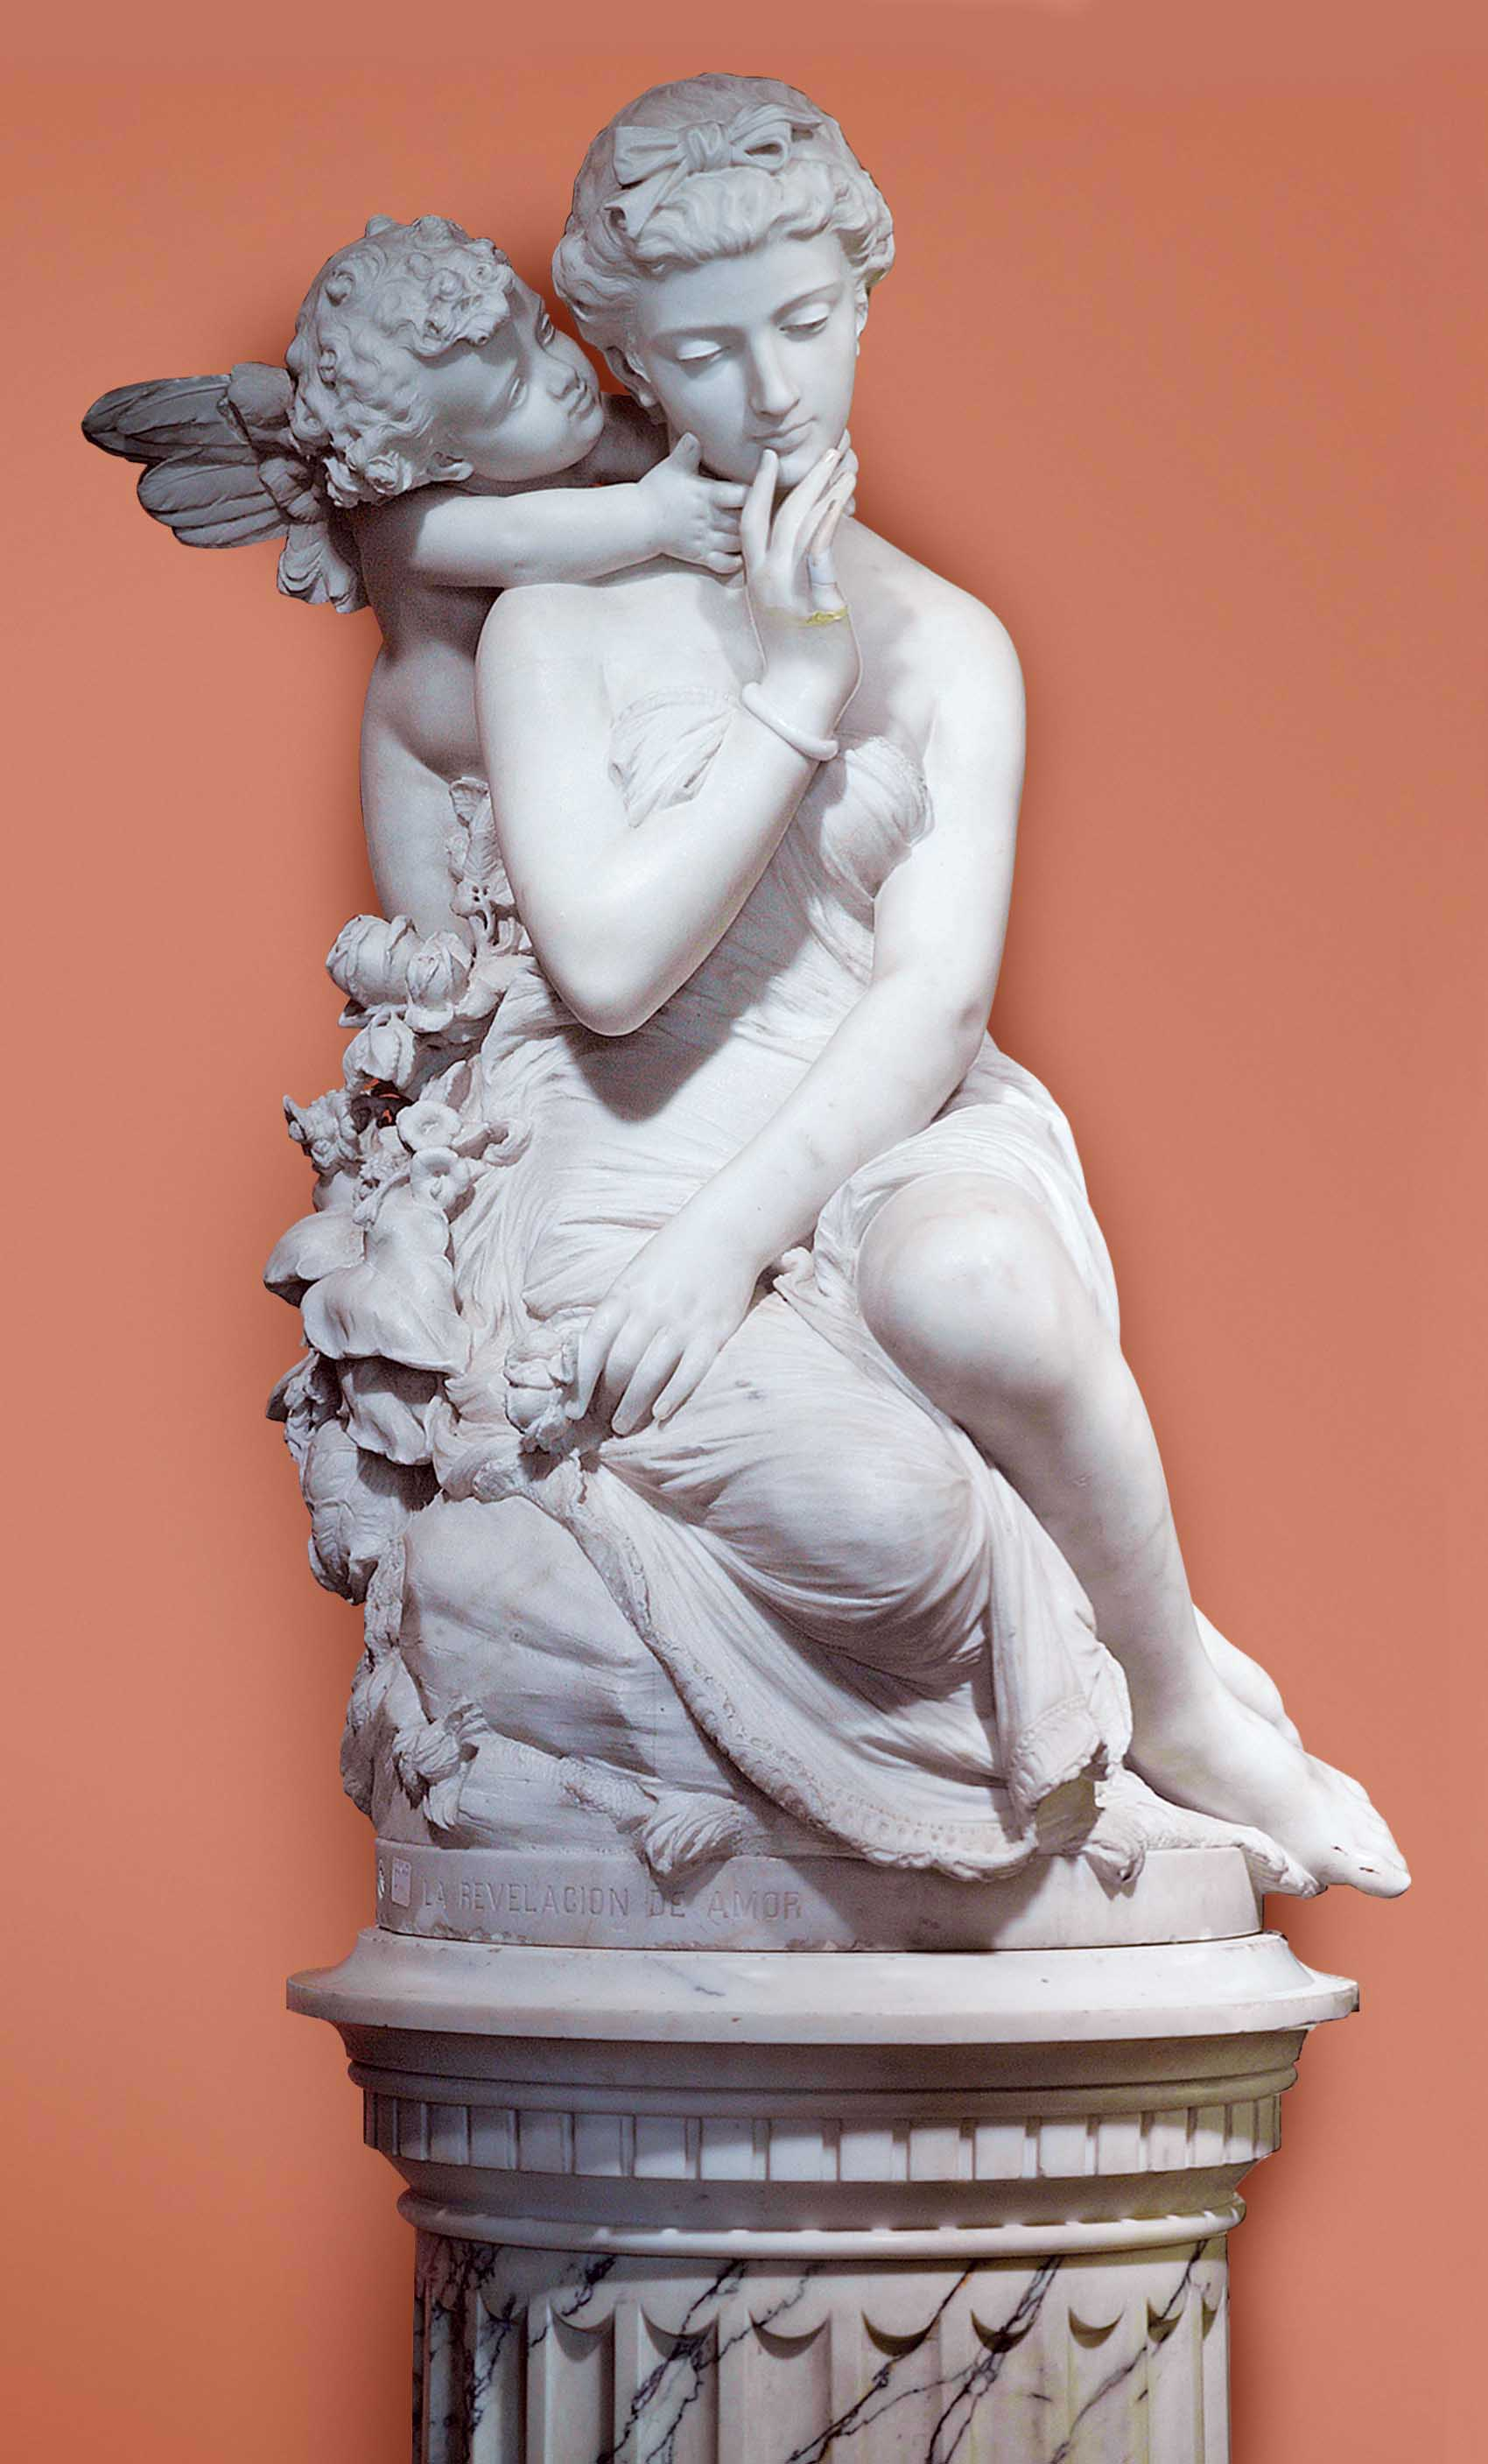 AN ITALIAN MARBLE GROUP OF CUPID AND PSYCHE, ENTITLED 'LA REVELACION DE AMOR' (LOVE AWAKENING), ON PEDESTAL